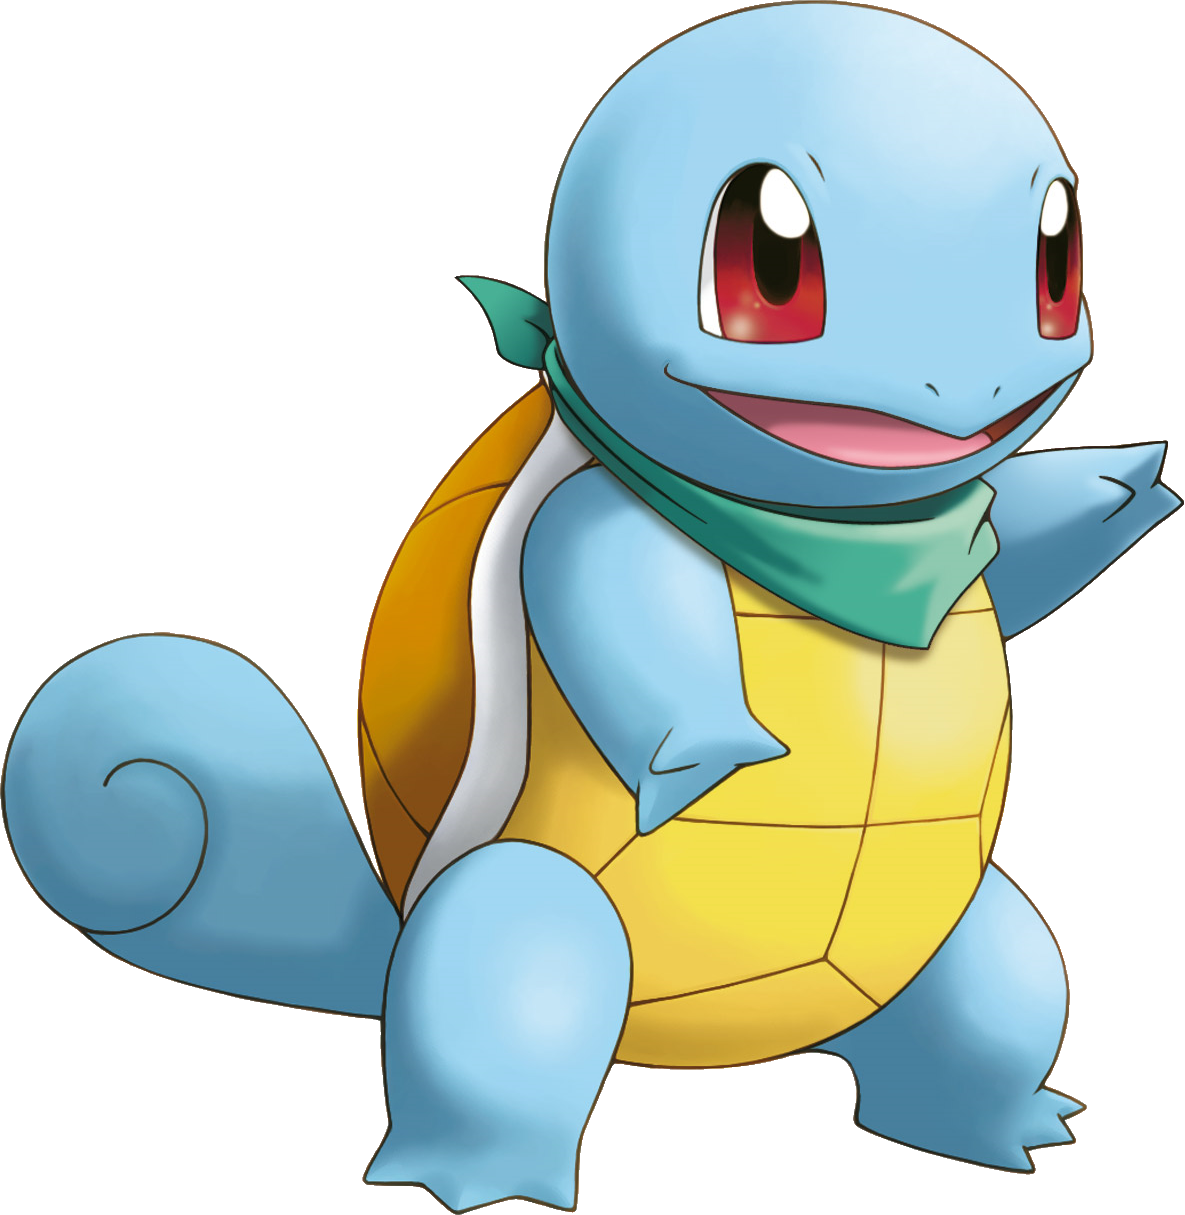 Image squirtle mystery dungeon. Pokemon png images